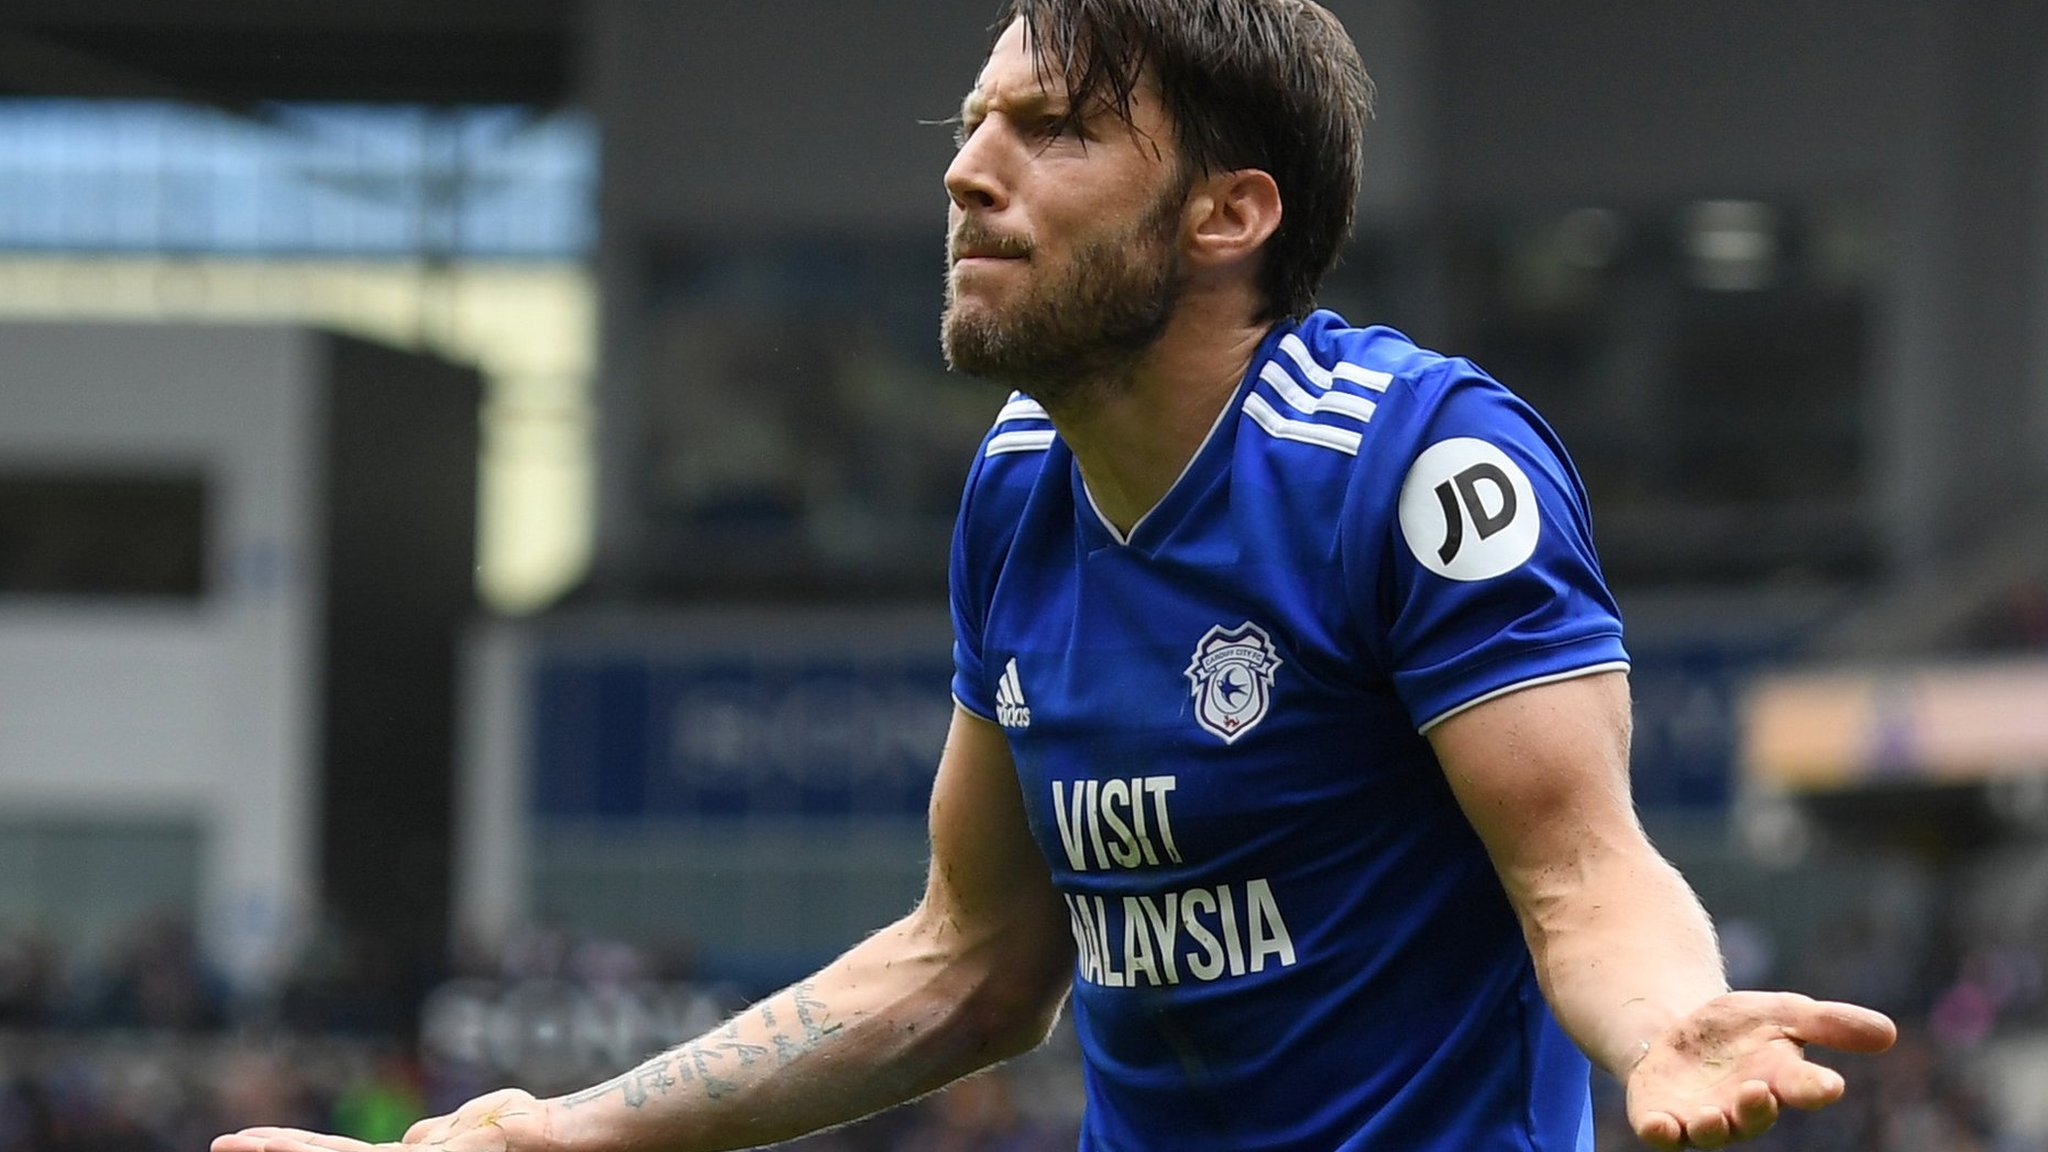 'There have been some ridiculous comments' - Cardiff's Arter criticises pundits